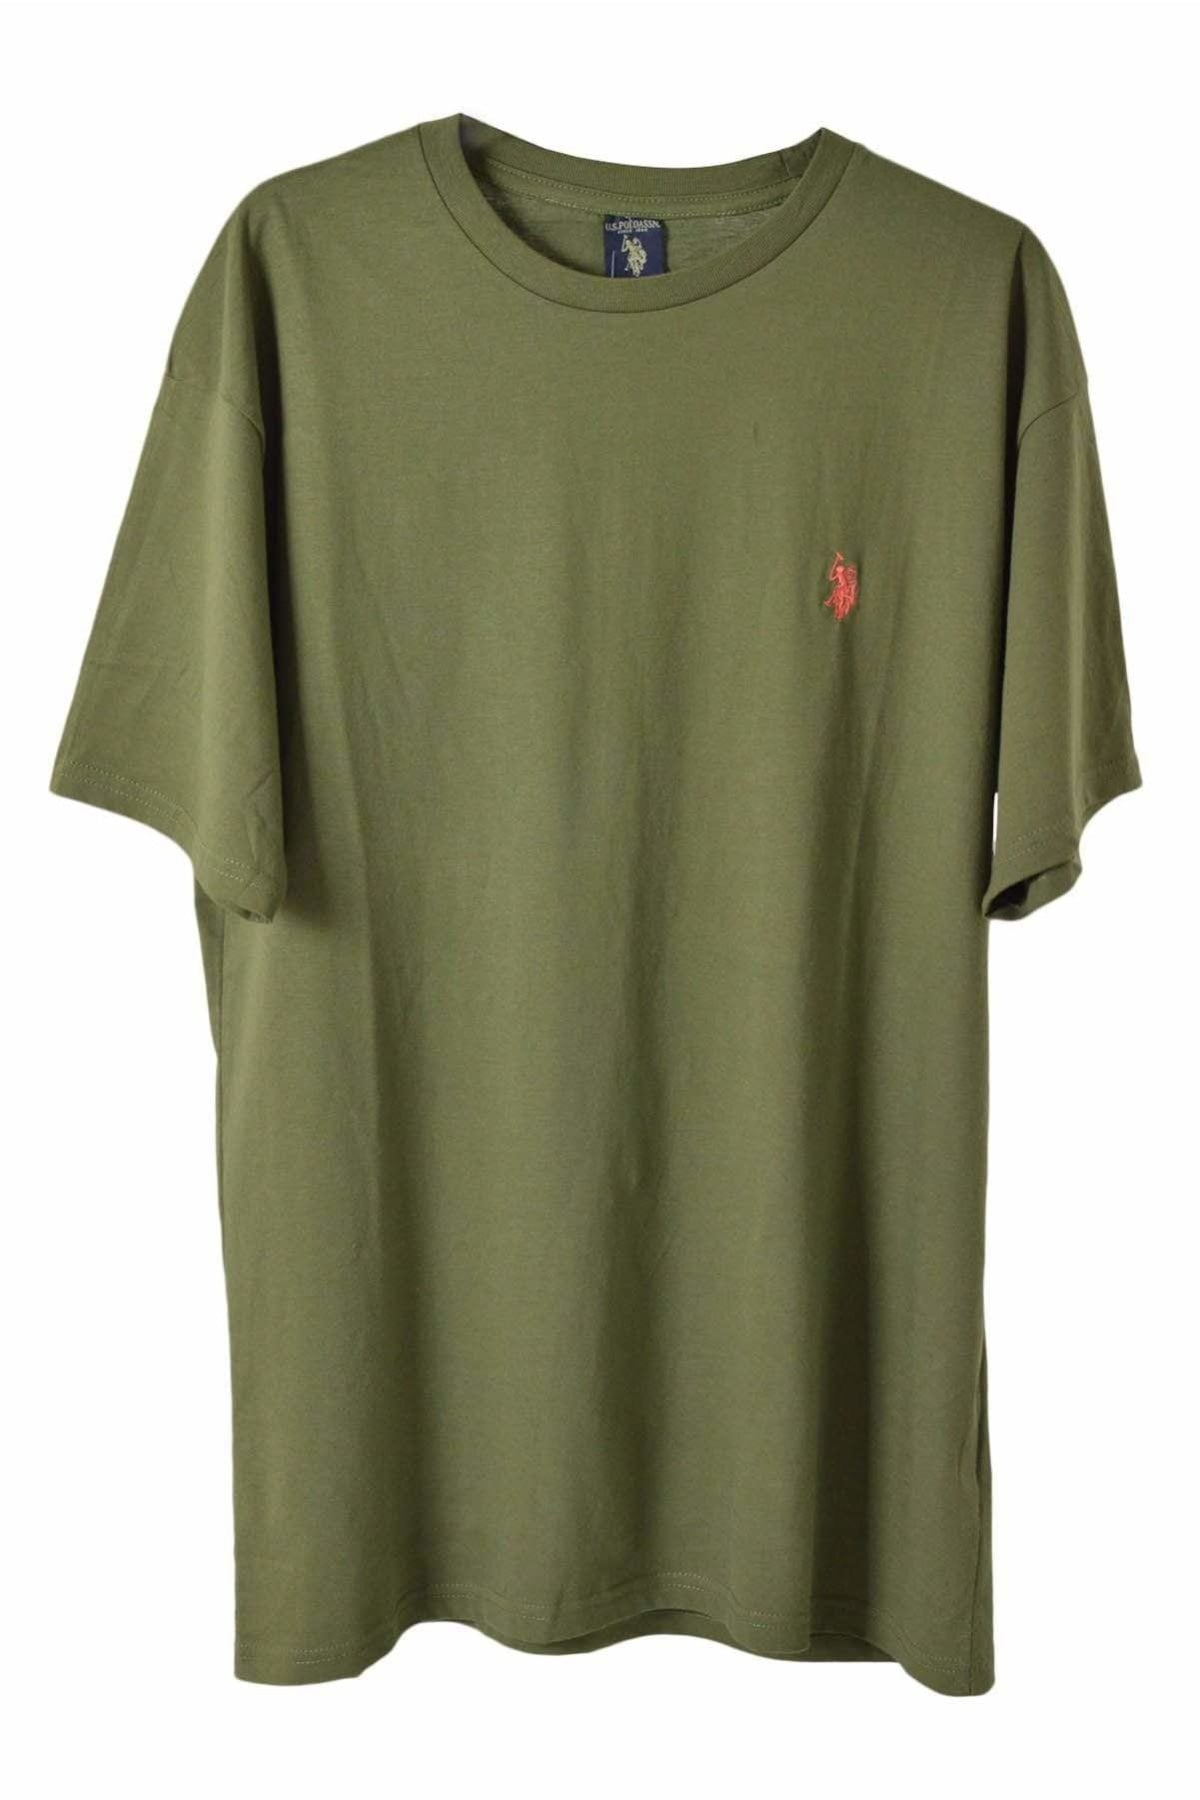 US Polo Assn. US Polo Assn. Cotton Crew Neck T-Shirt | Small / Khaki Secret Label